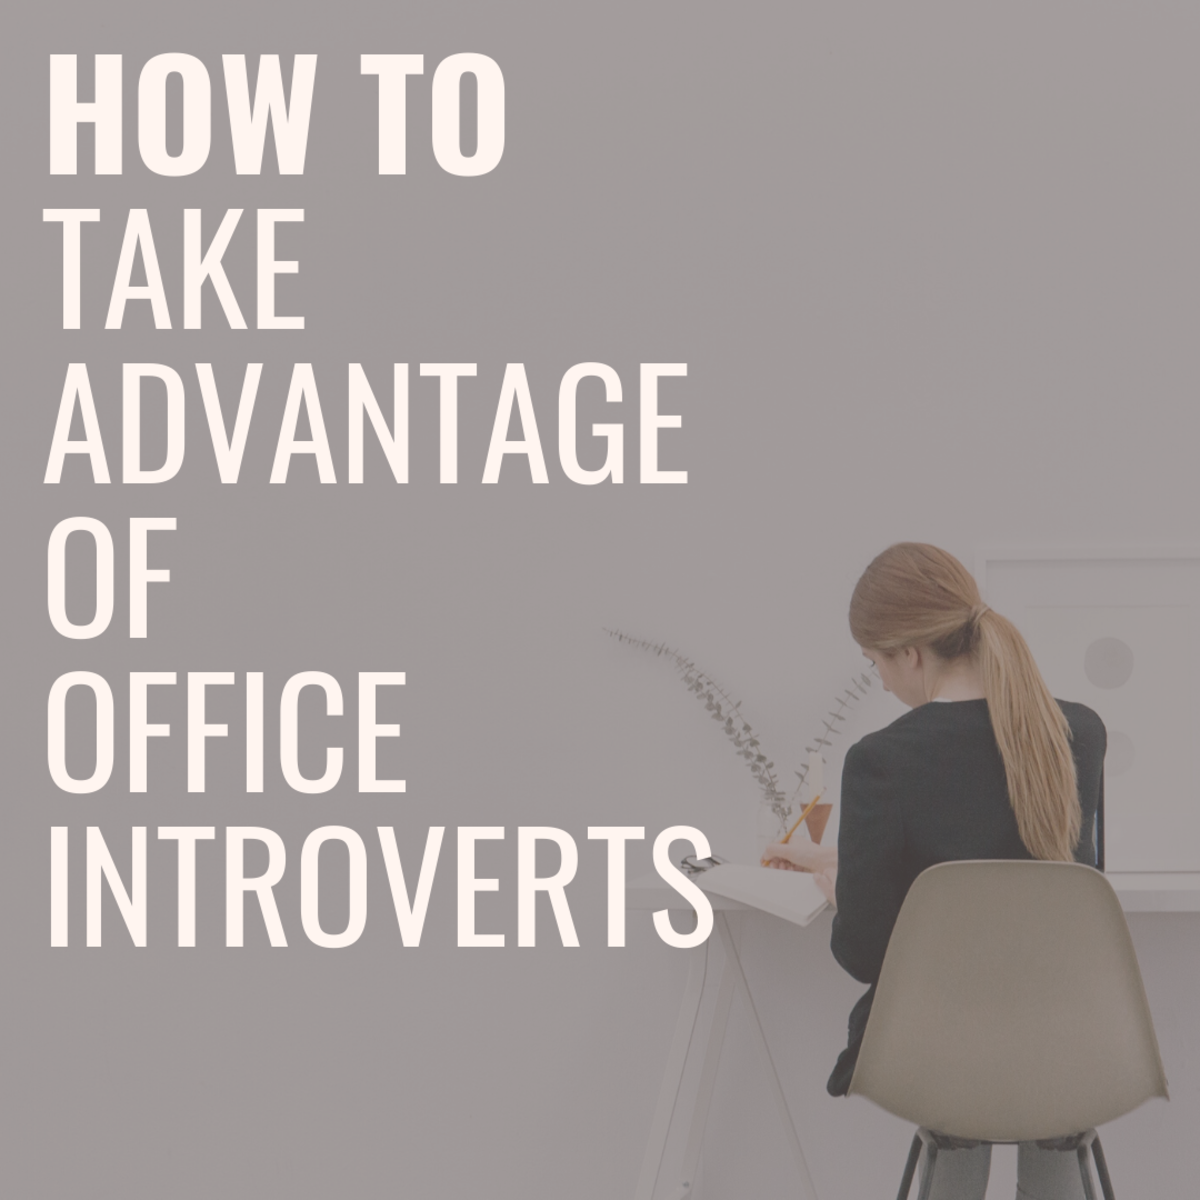 Learn how to manage introverts at your place of work!